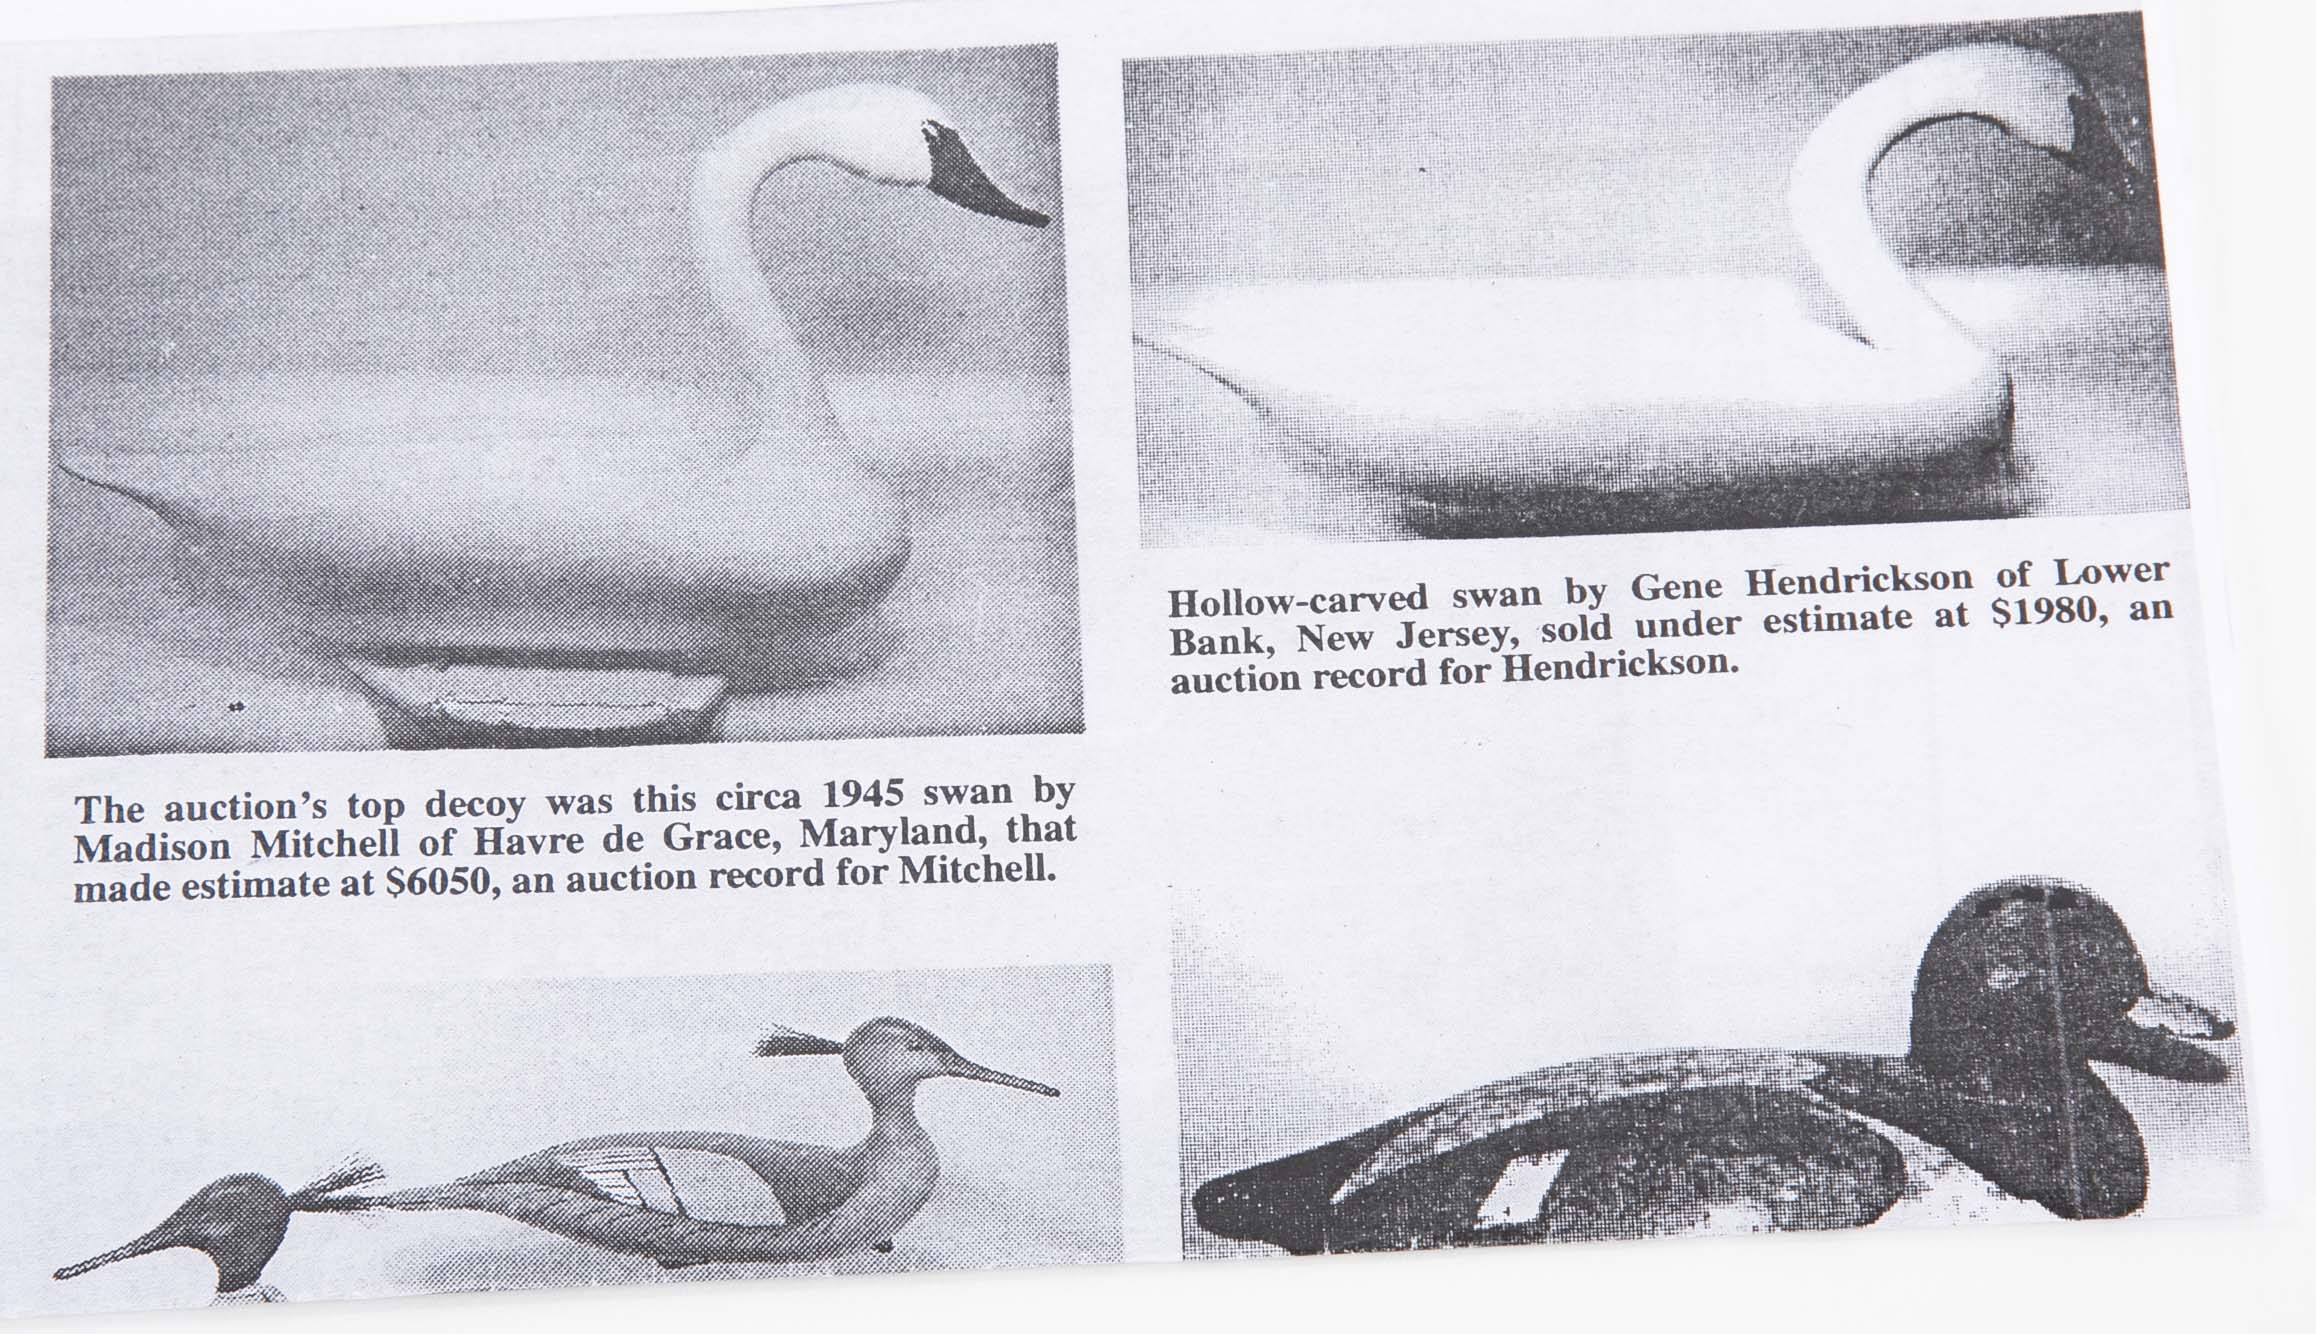 Swan Decoy by Well Known Havre de Grace, MD, Carver Madison Mitchell,